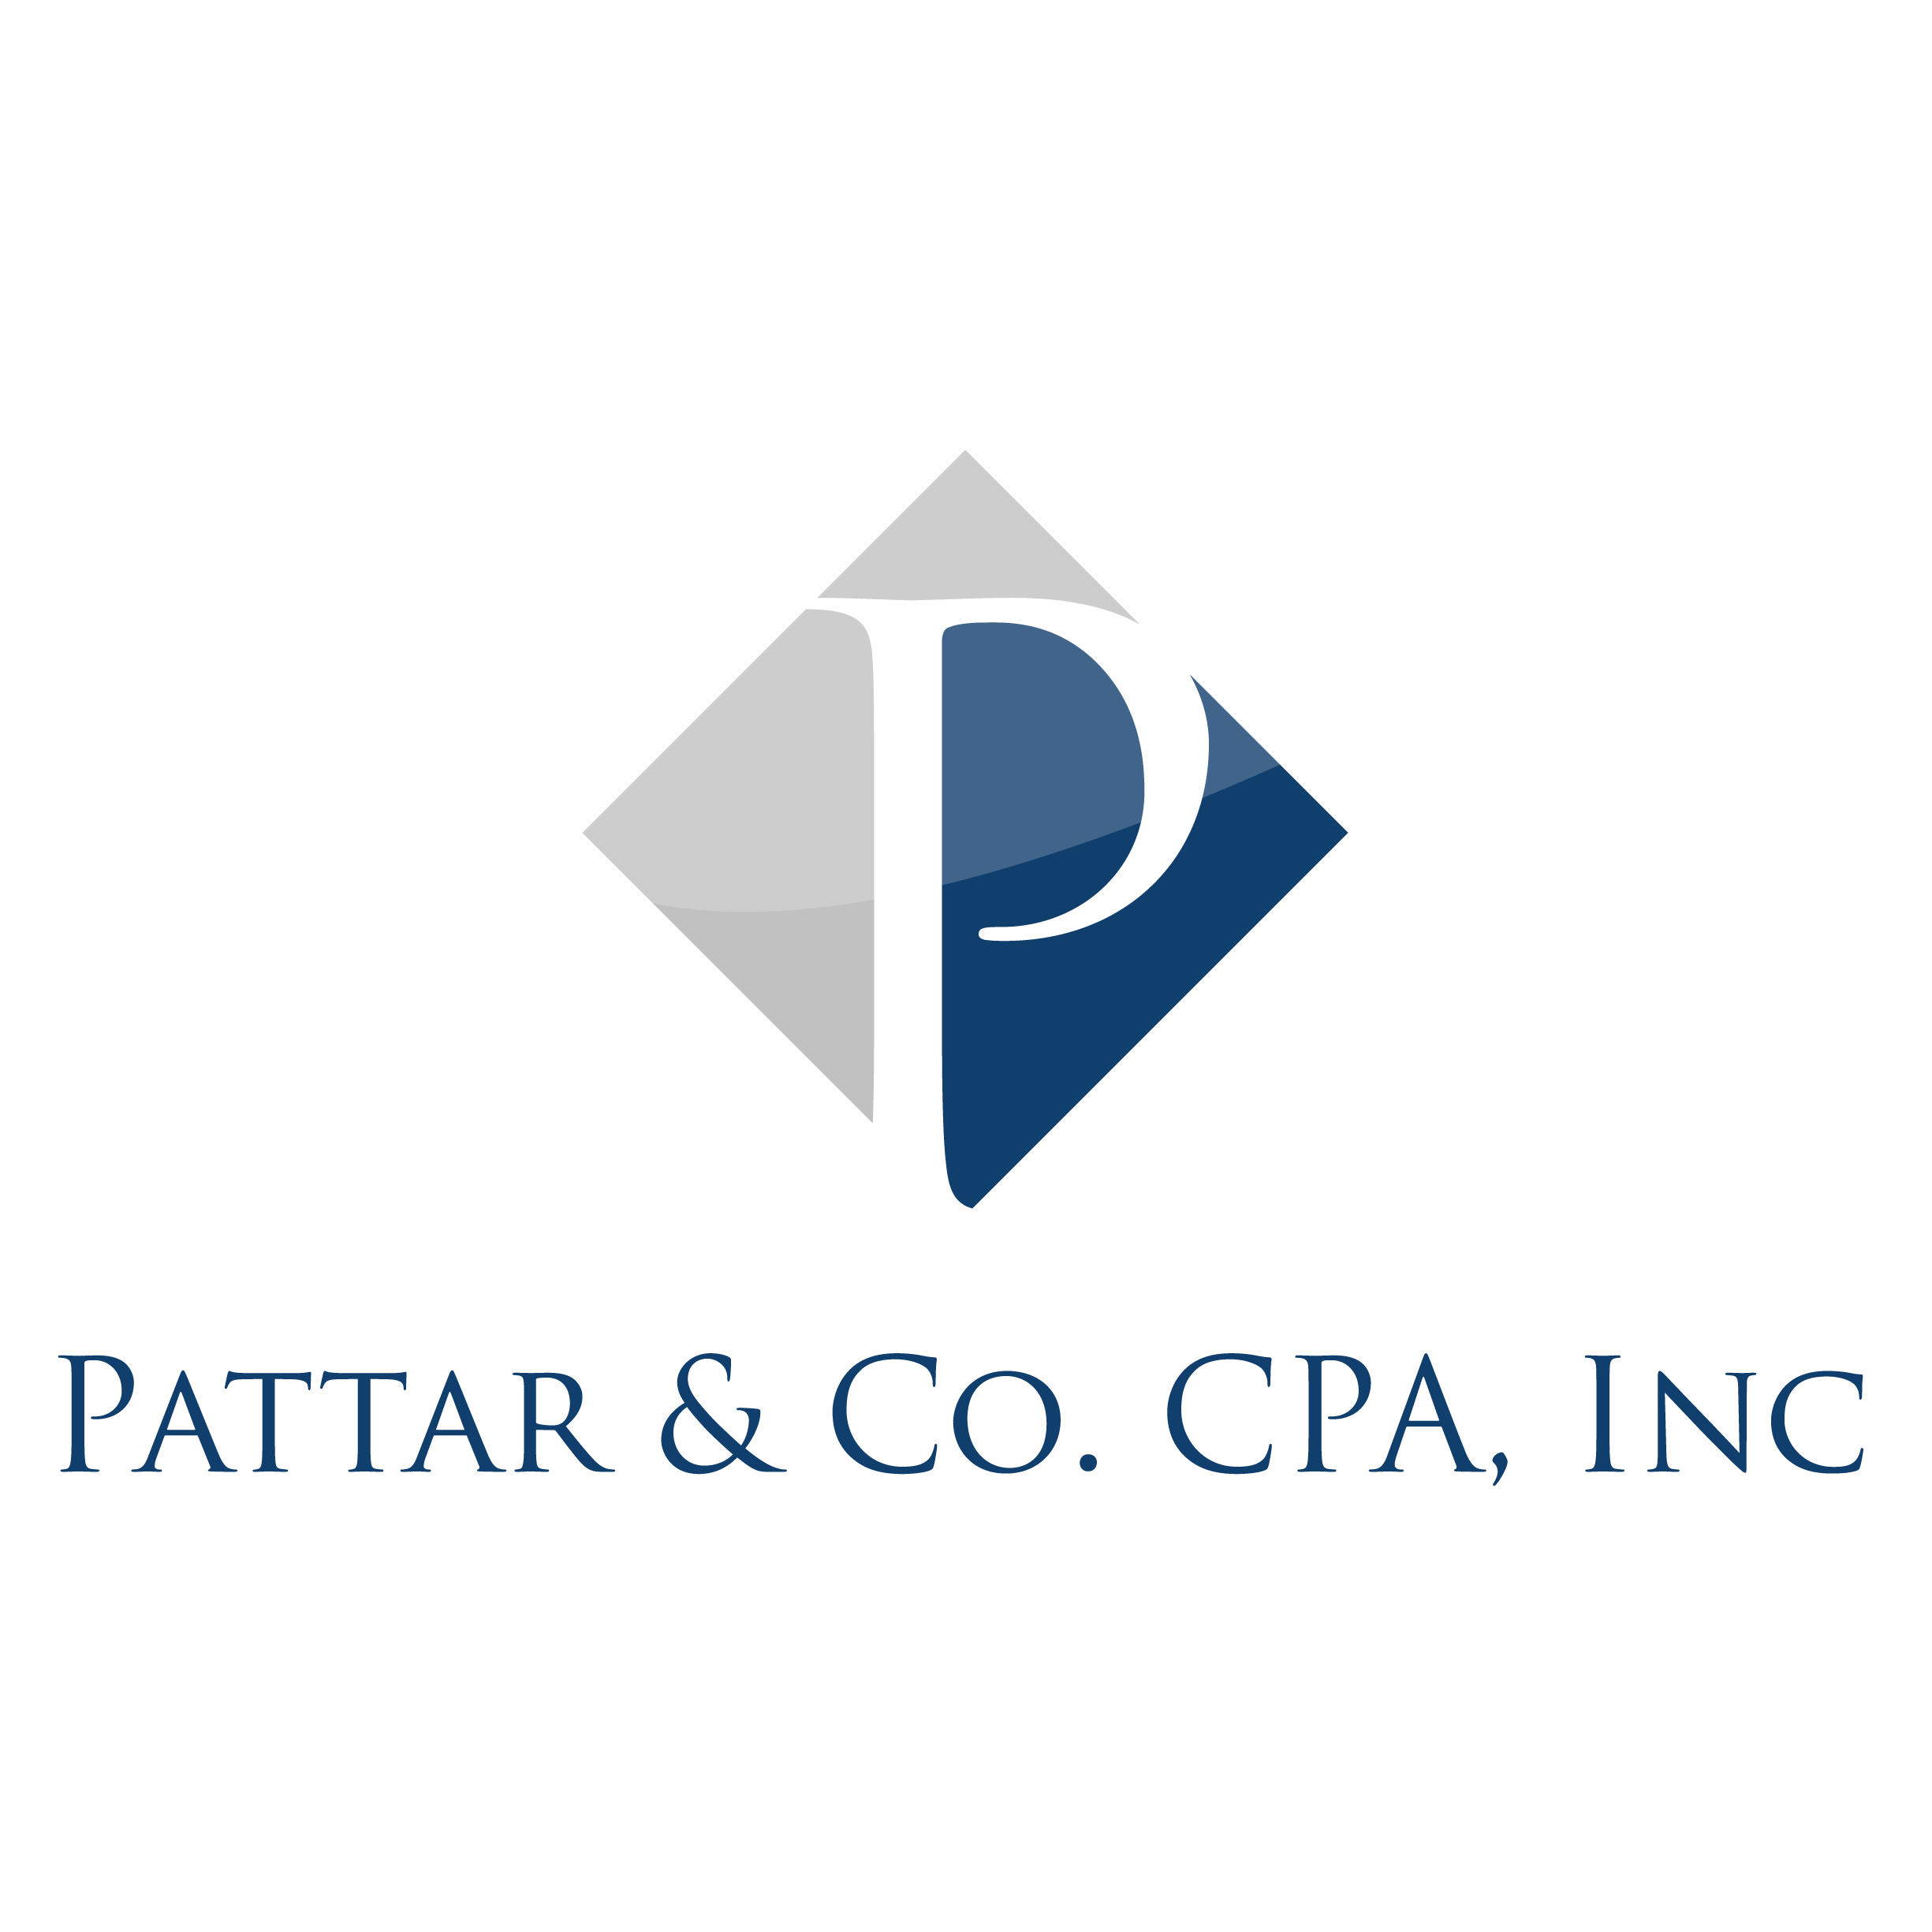 Pattar & Co. CPA, Inc. - Ft. Wayne, IN - Business & Secretarial